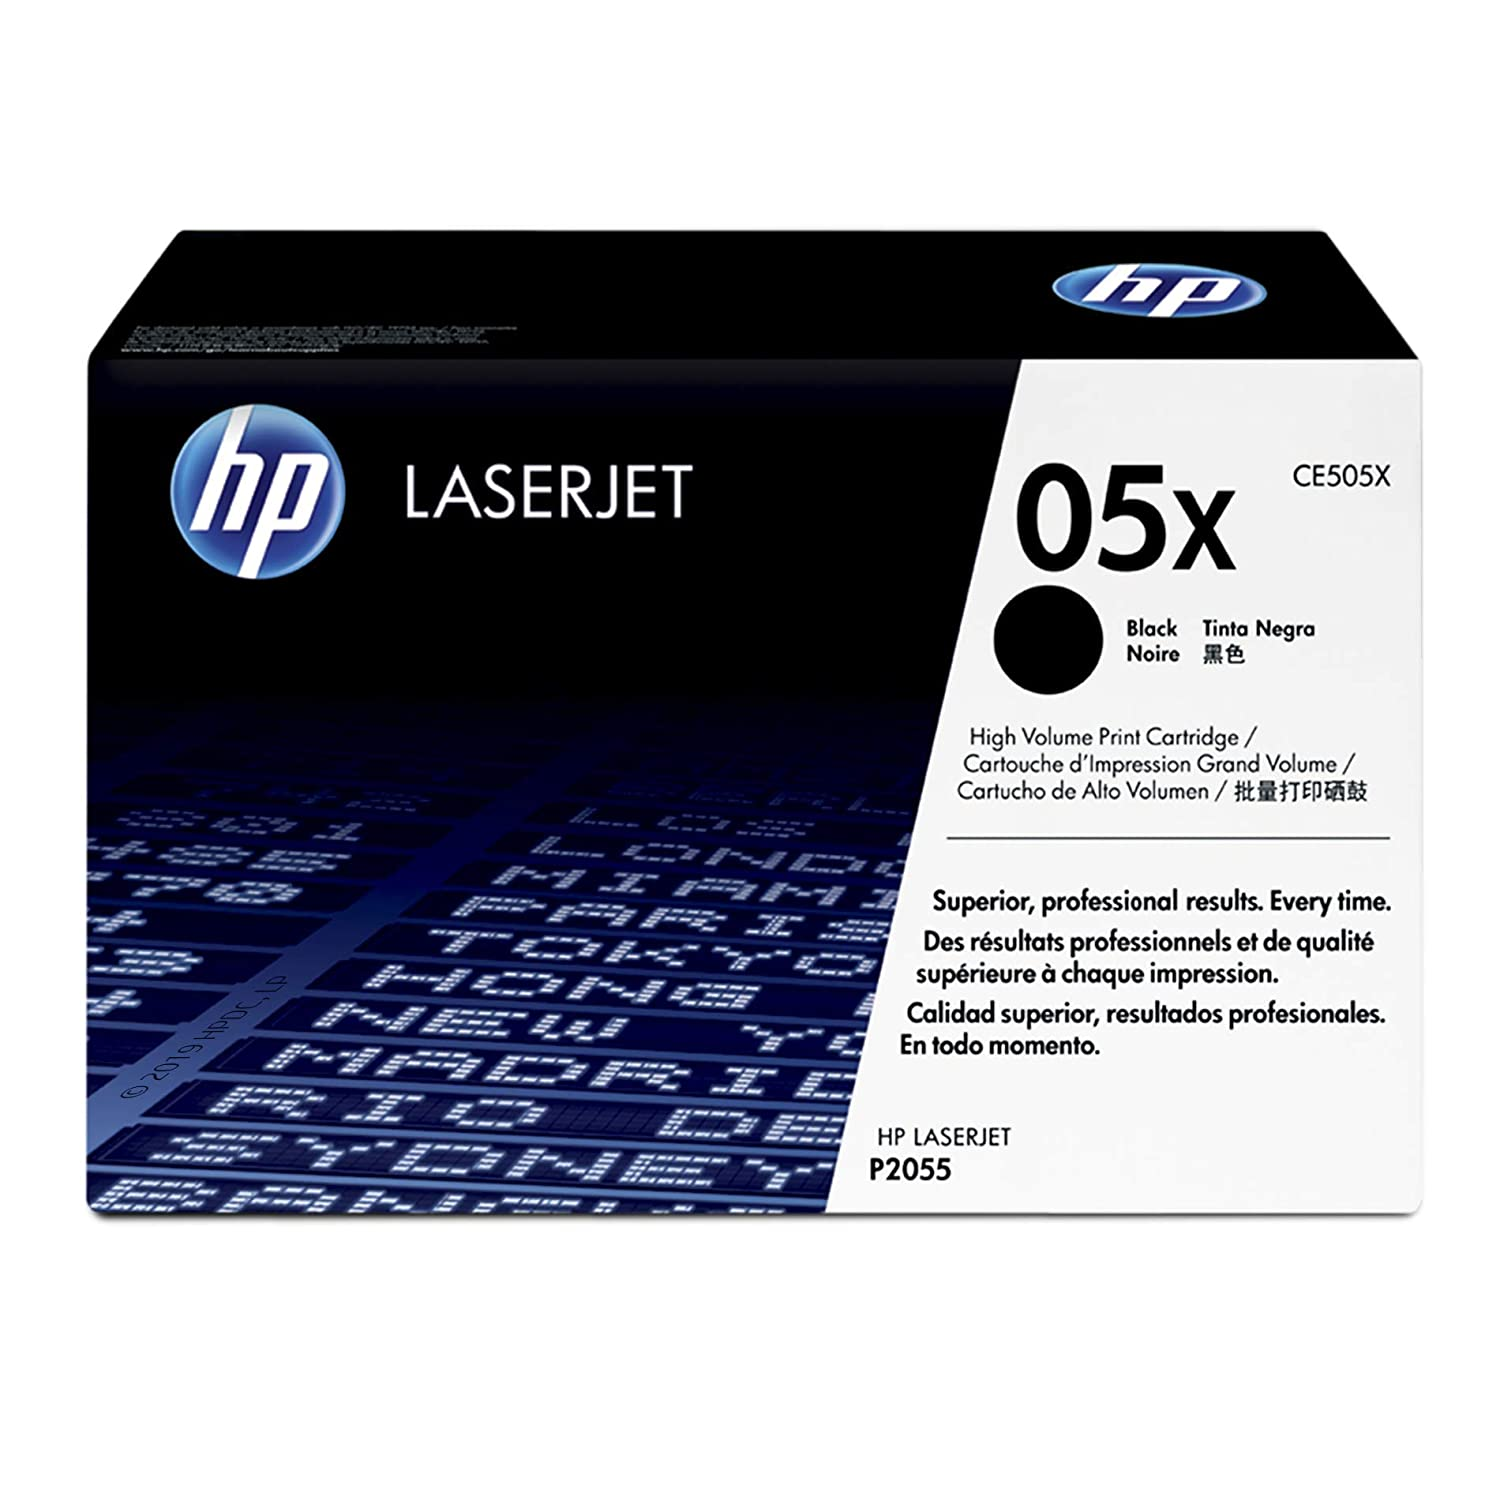 4PK CE505X 05X High Yield Black Toner For HP LaserJet P2055d P2055dn Printer